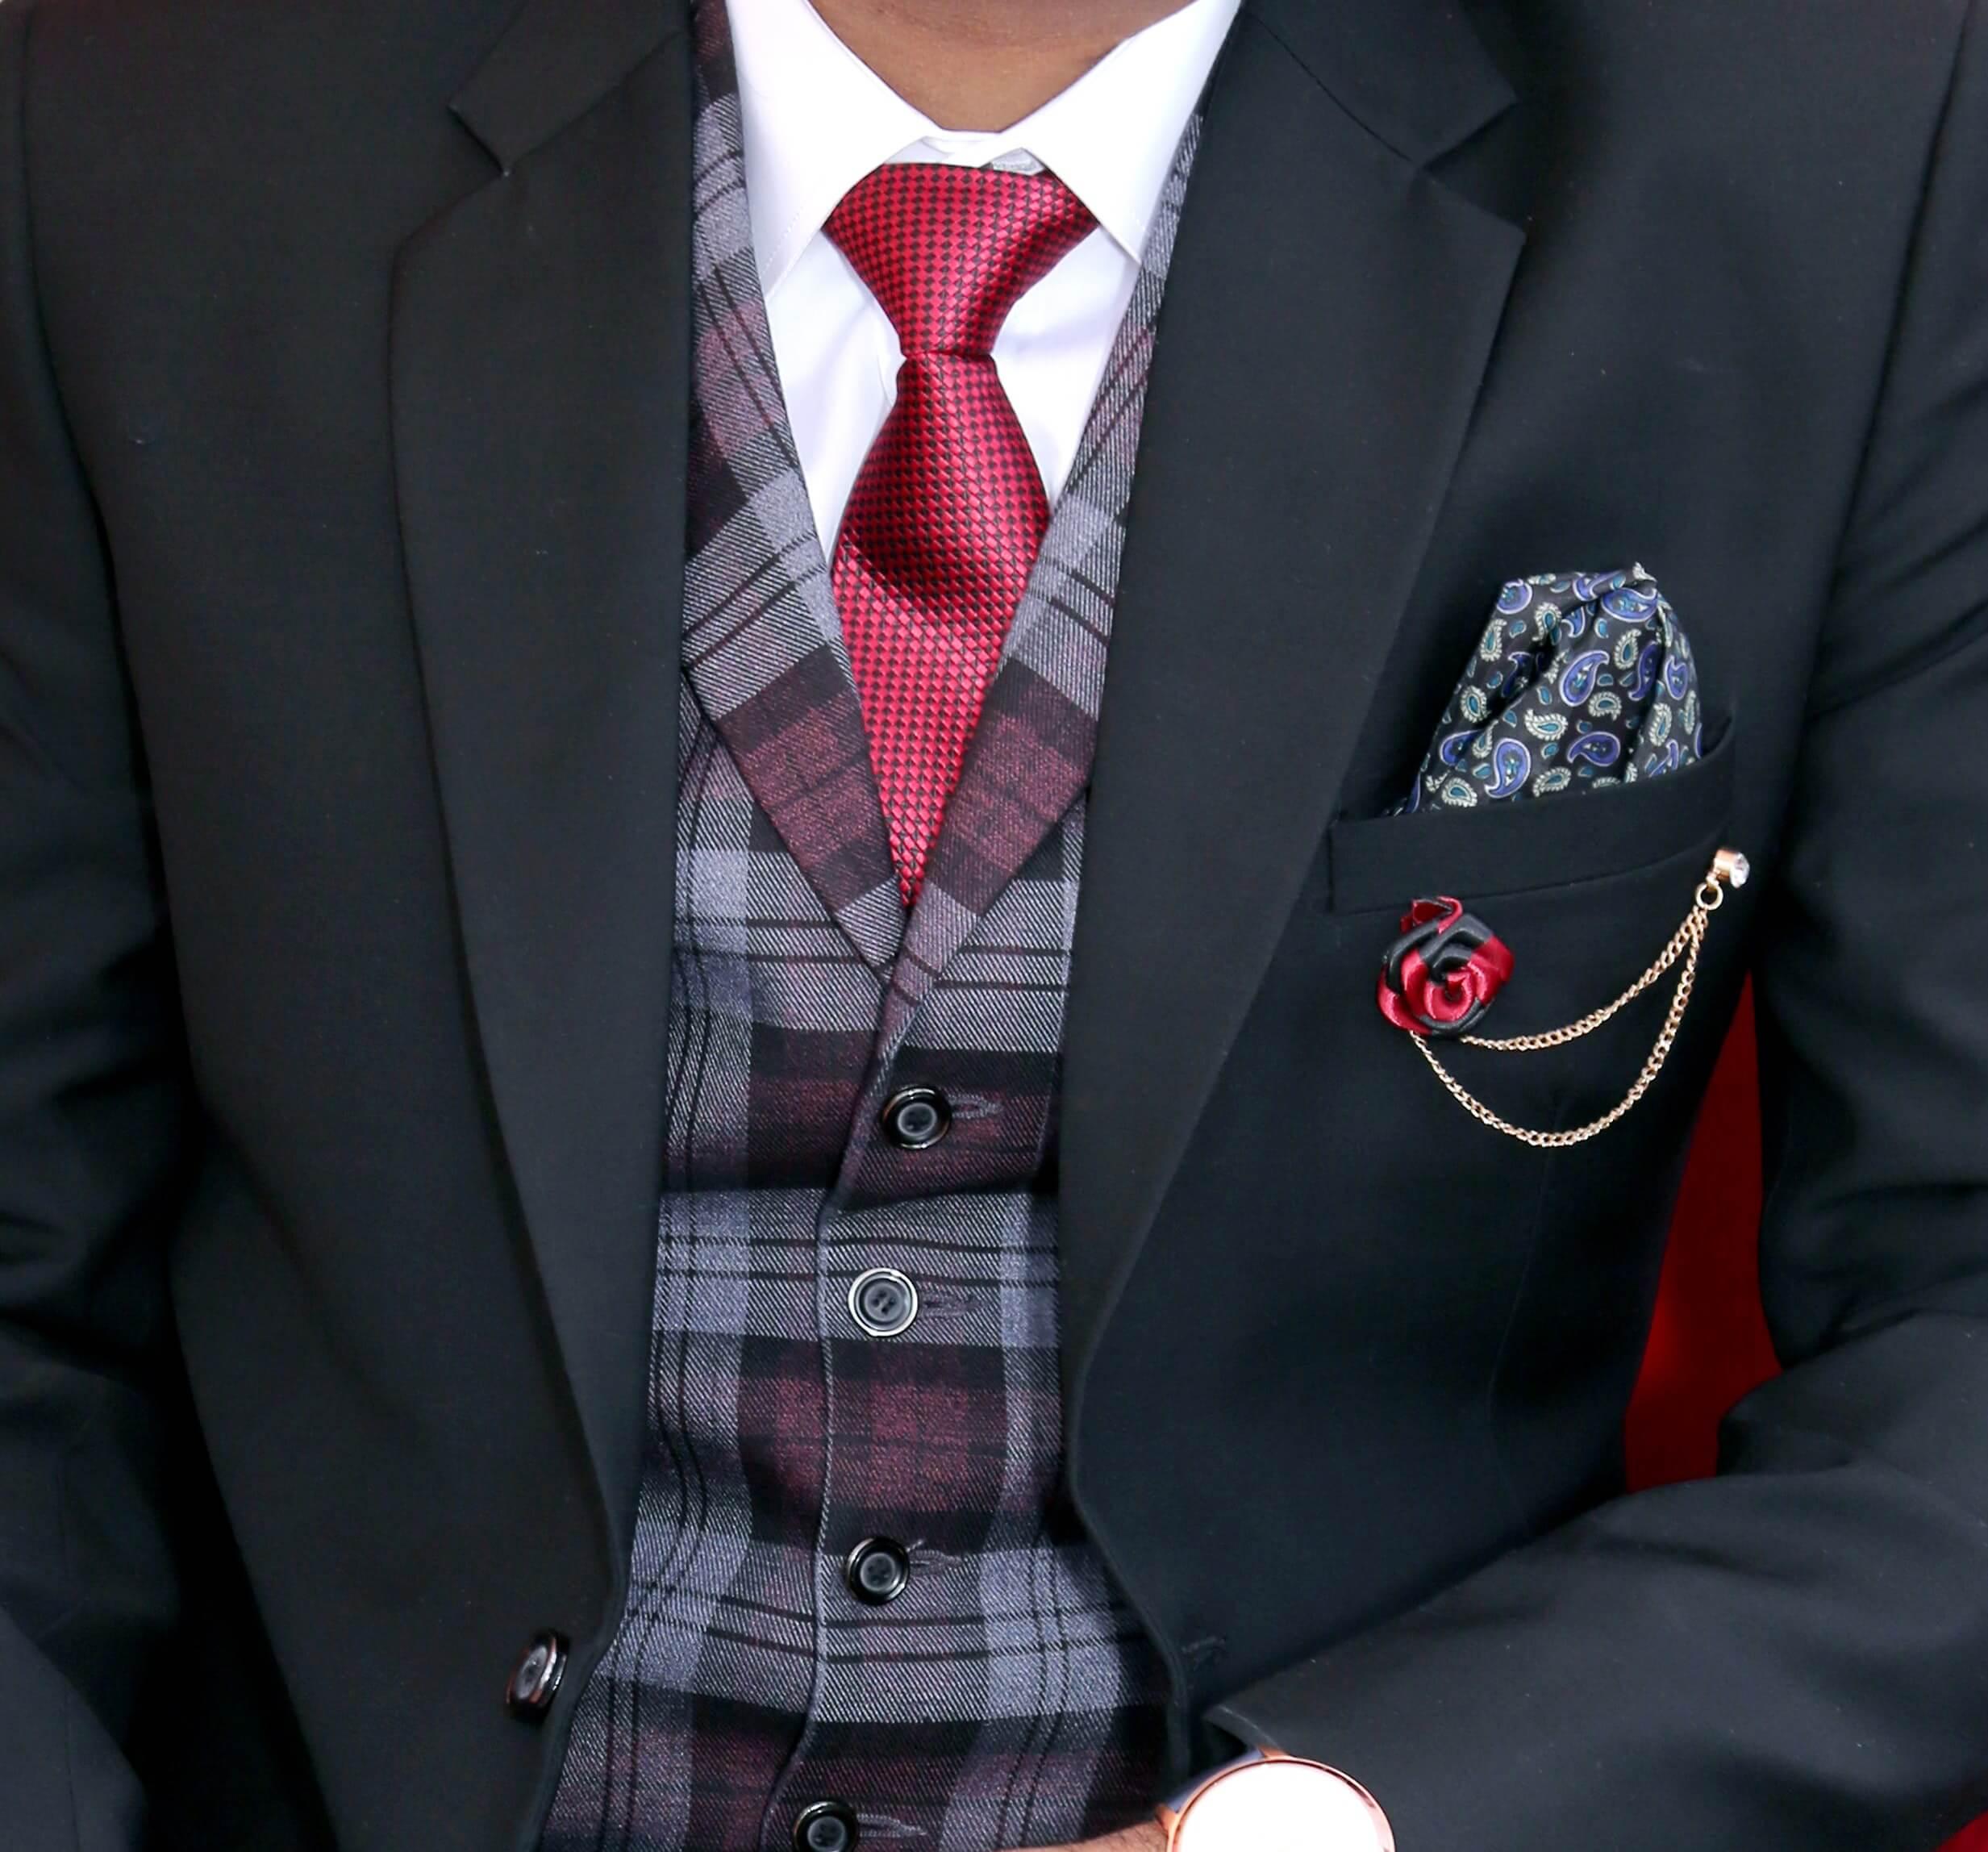 man in tuxedo with red tie